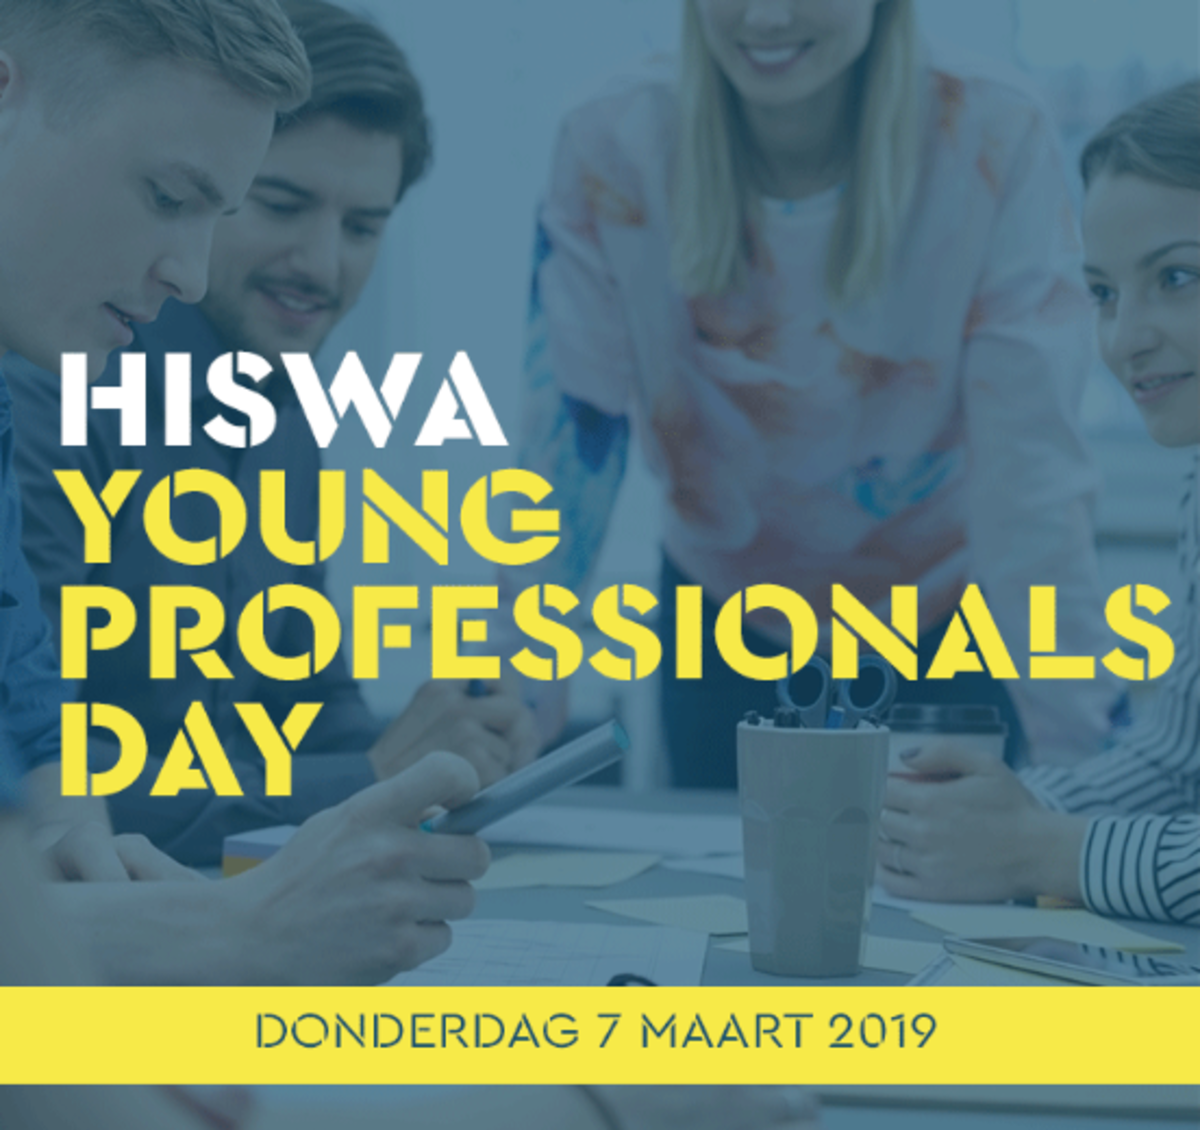 HISWA Young Professionals Day.PNG